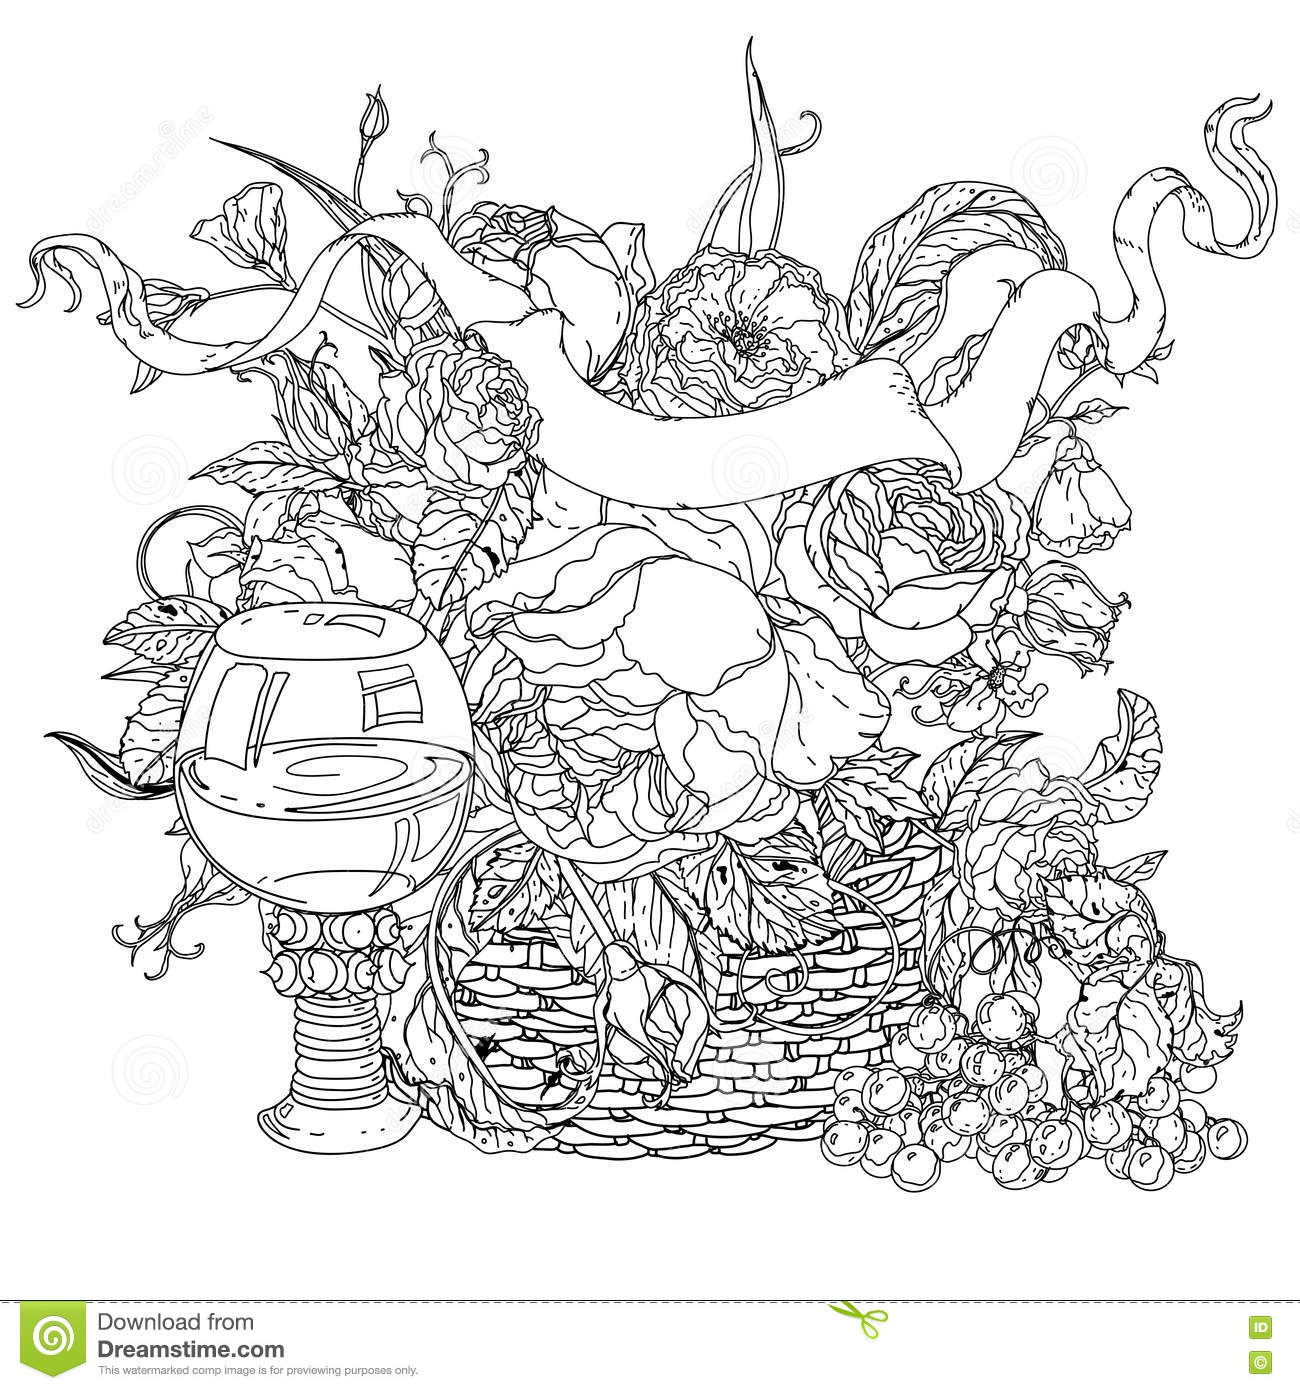 Still life coloring book antistress style picture stock Coloring book life